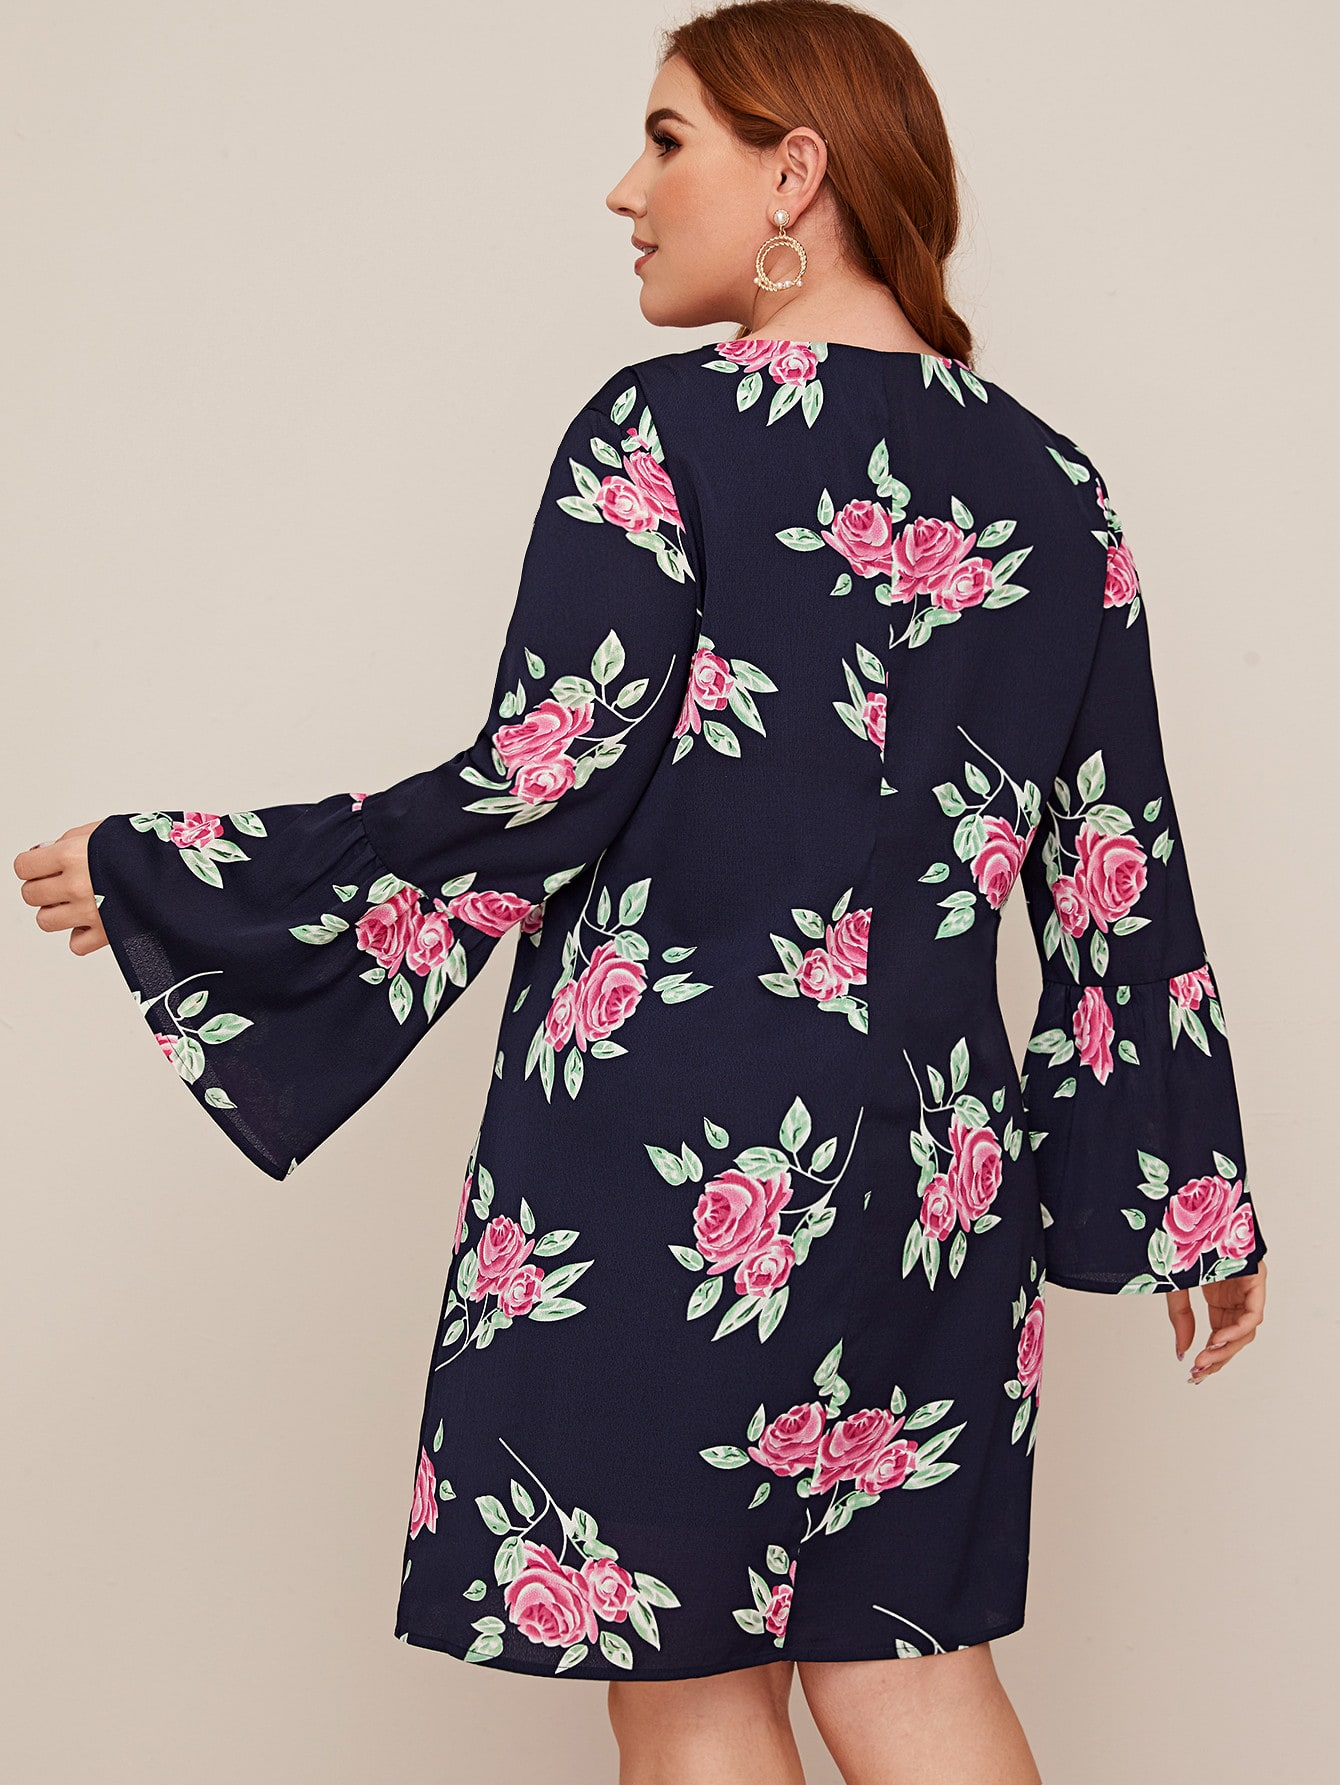 SHEIN / Plus Lace Up Neck Bell Sleeve Floral Print Dress